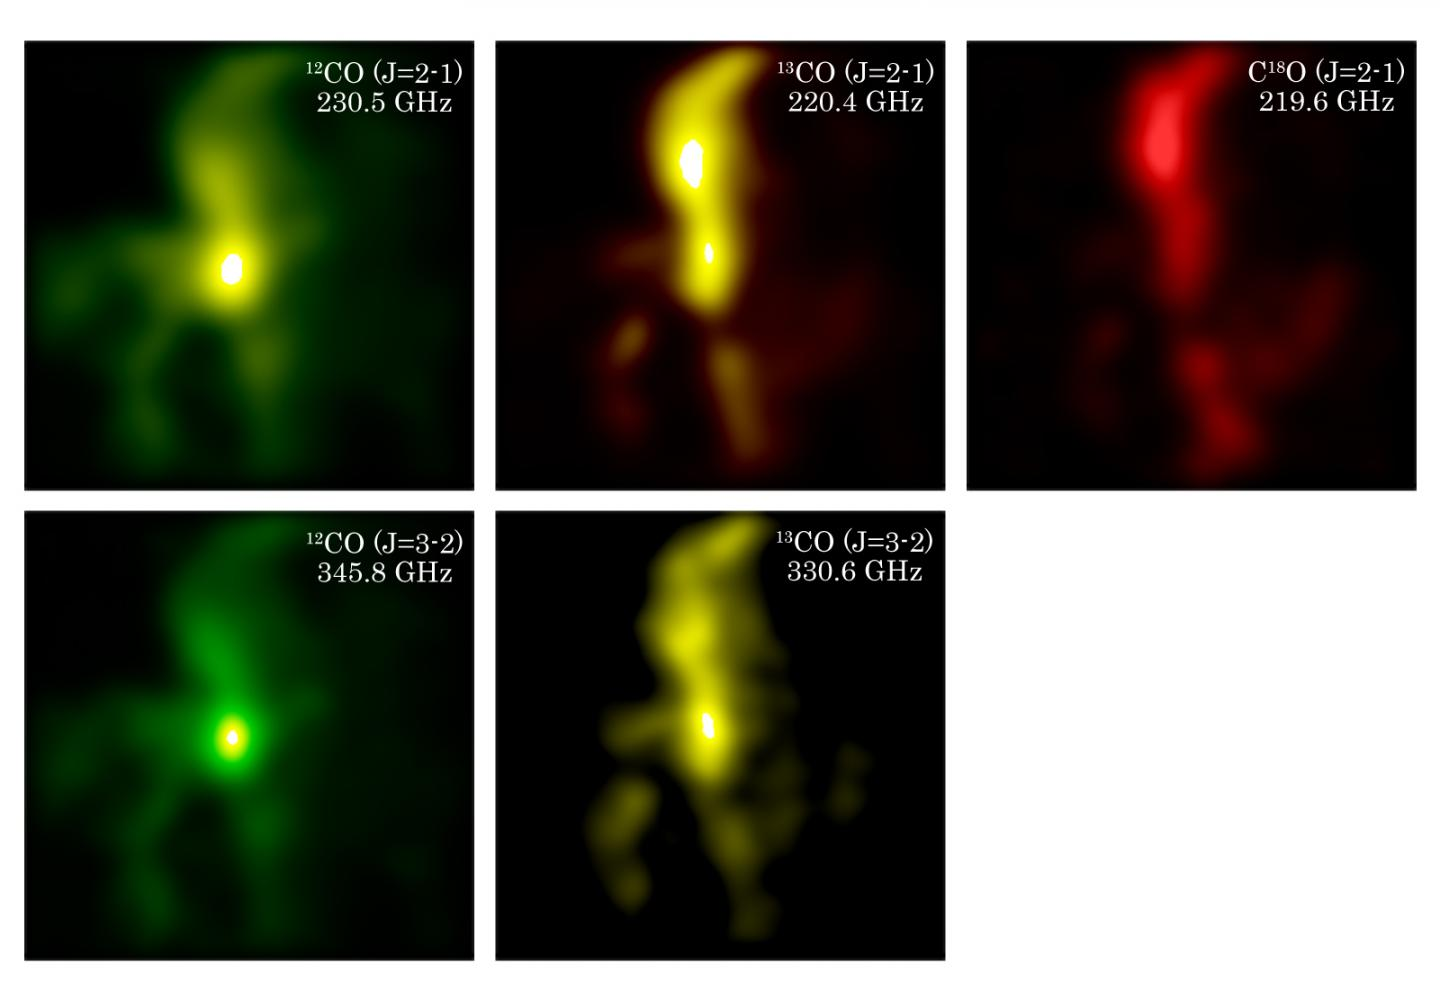 Distribution of CO isotopologues in the Orion molecular cloud